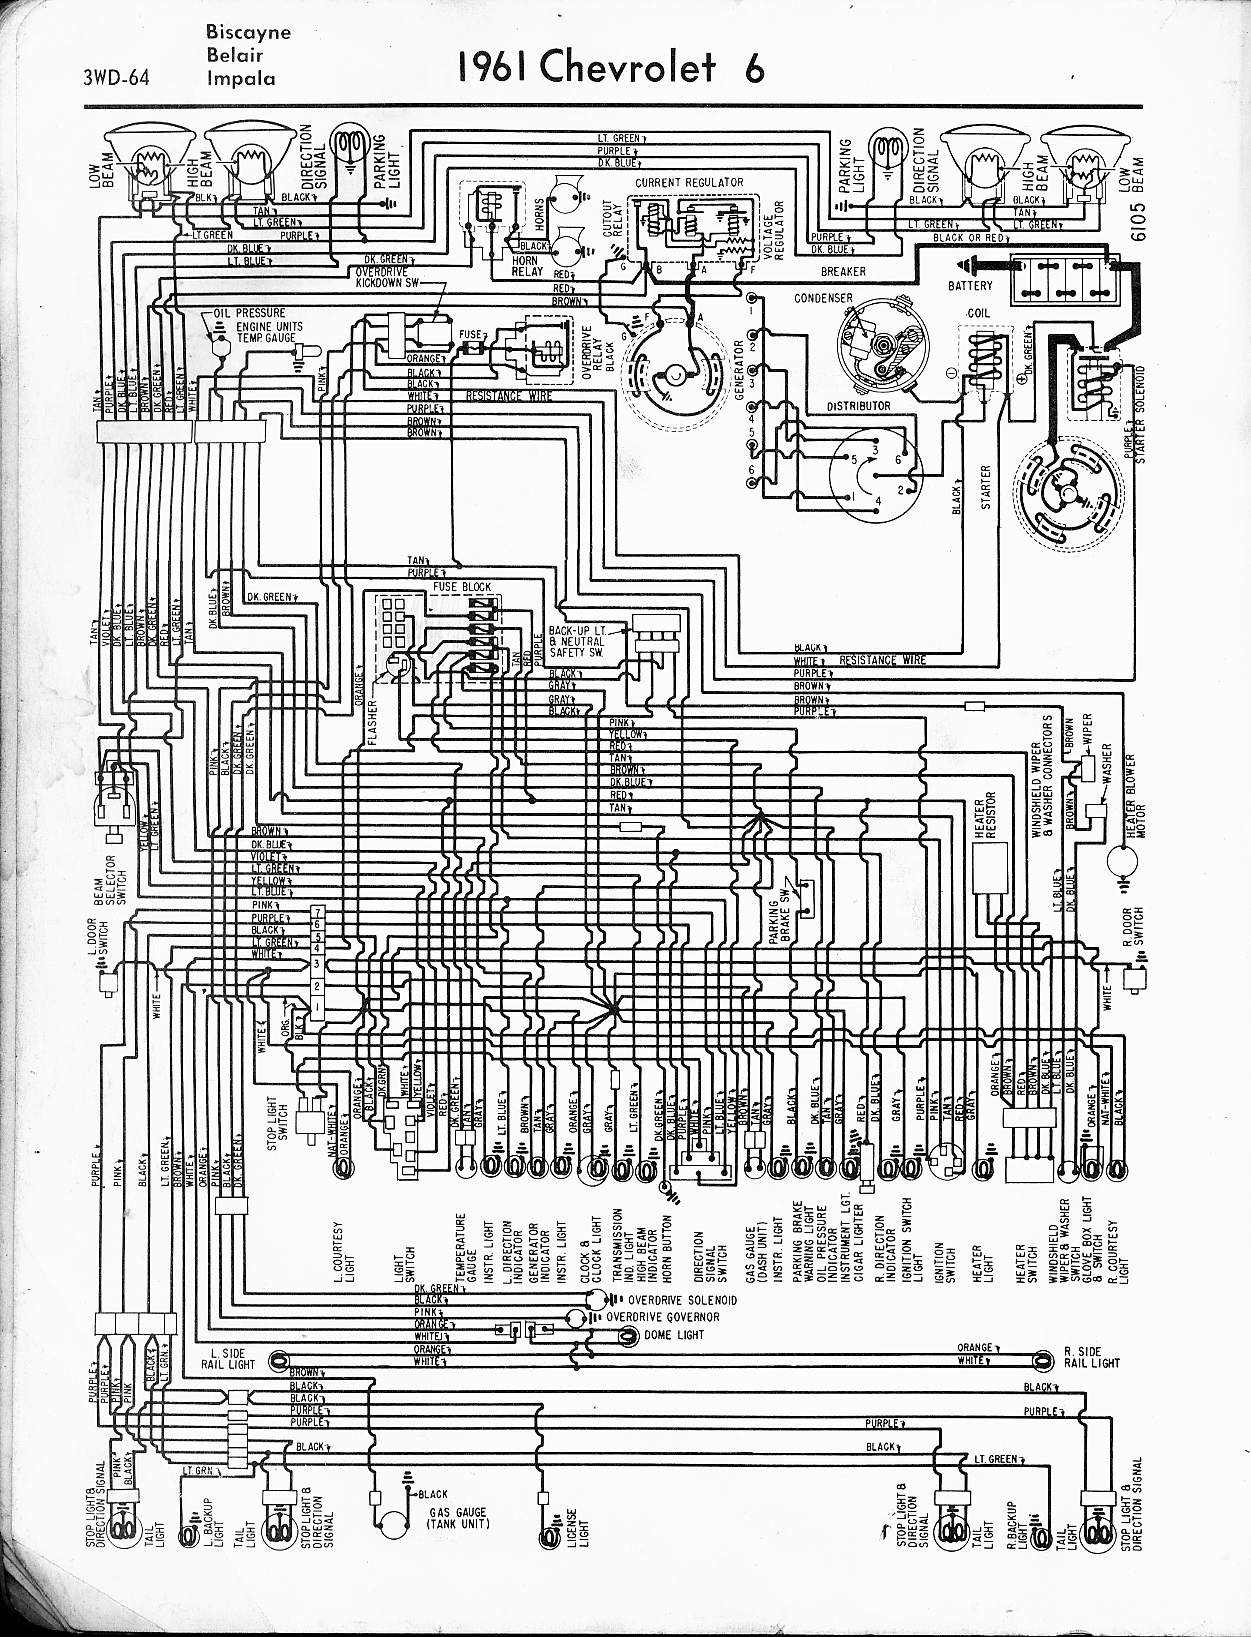 MWireChev61_3WD 064 57 65 chevy wiring diagrams 2001 chevy impala radio wiring harness at panicattacktreatment.co